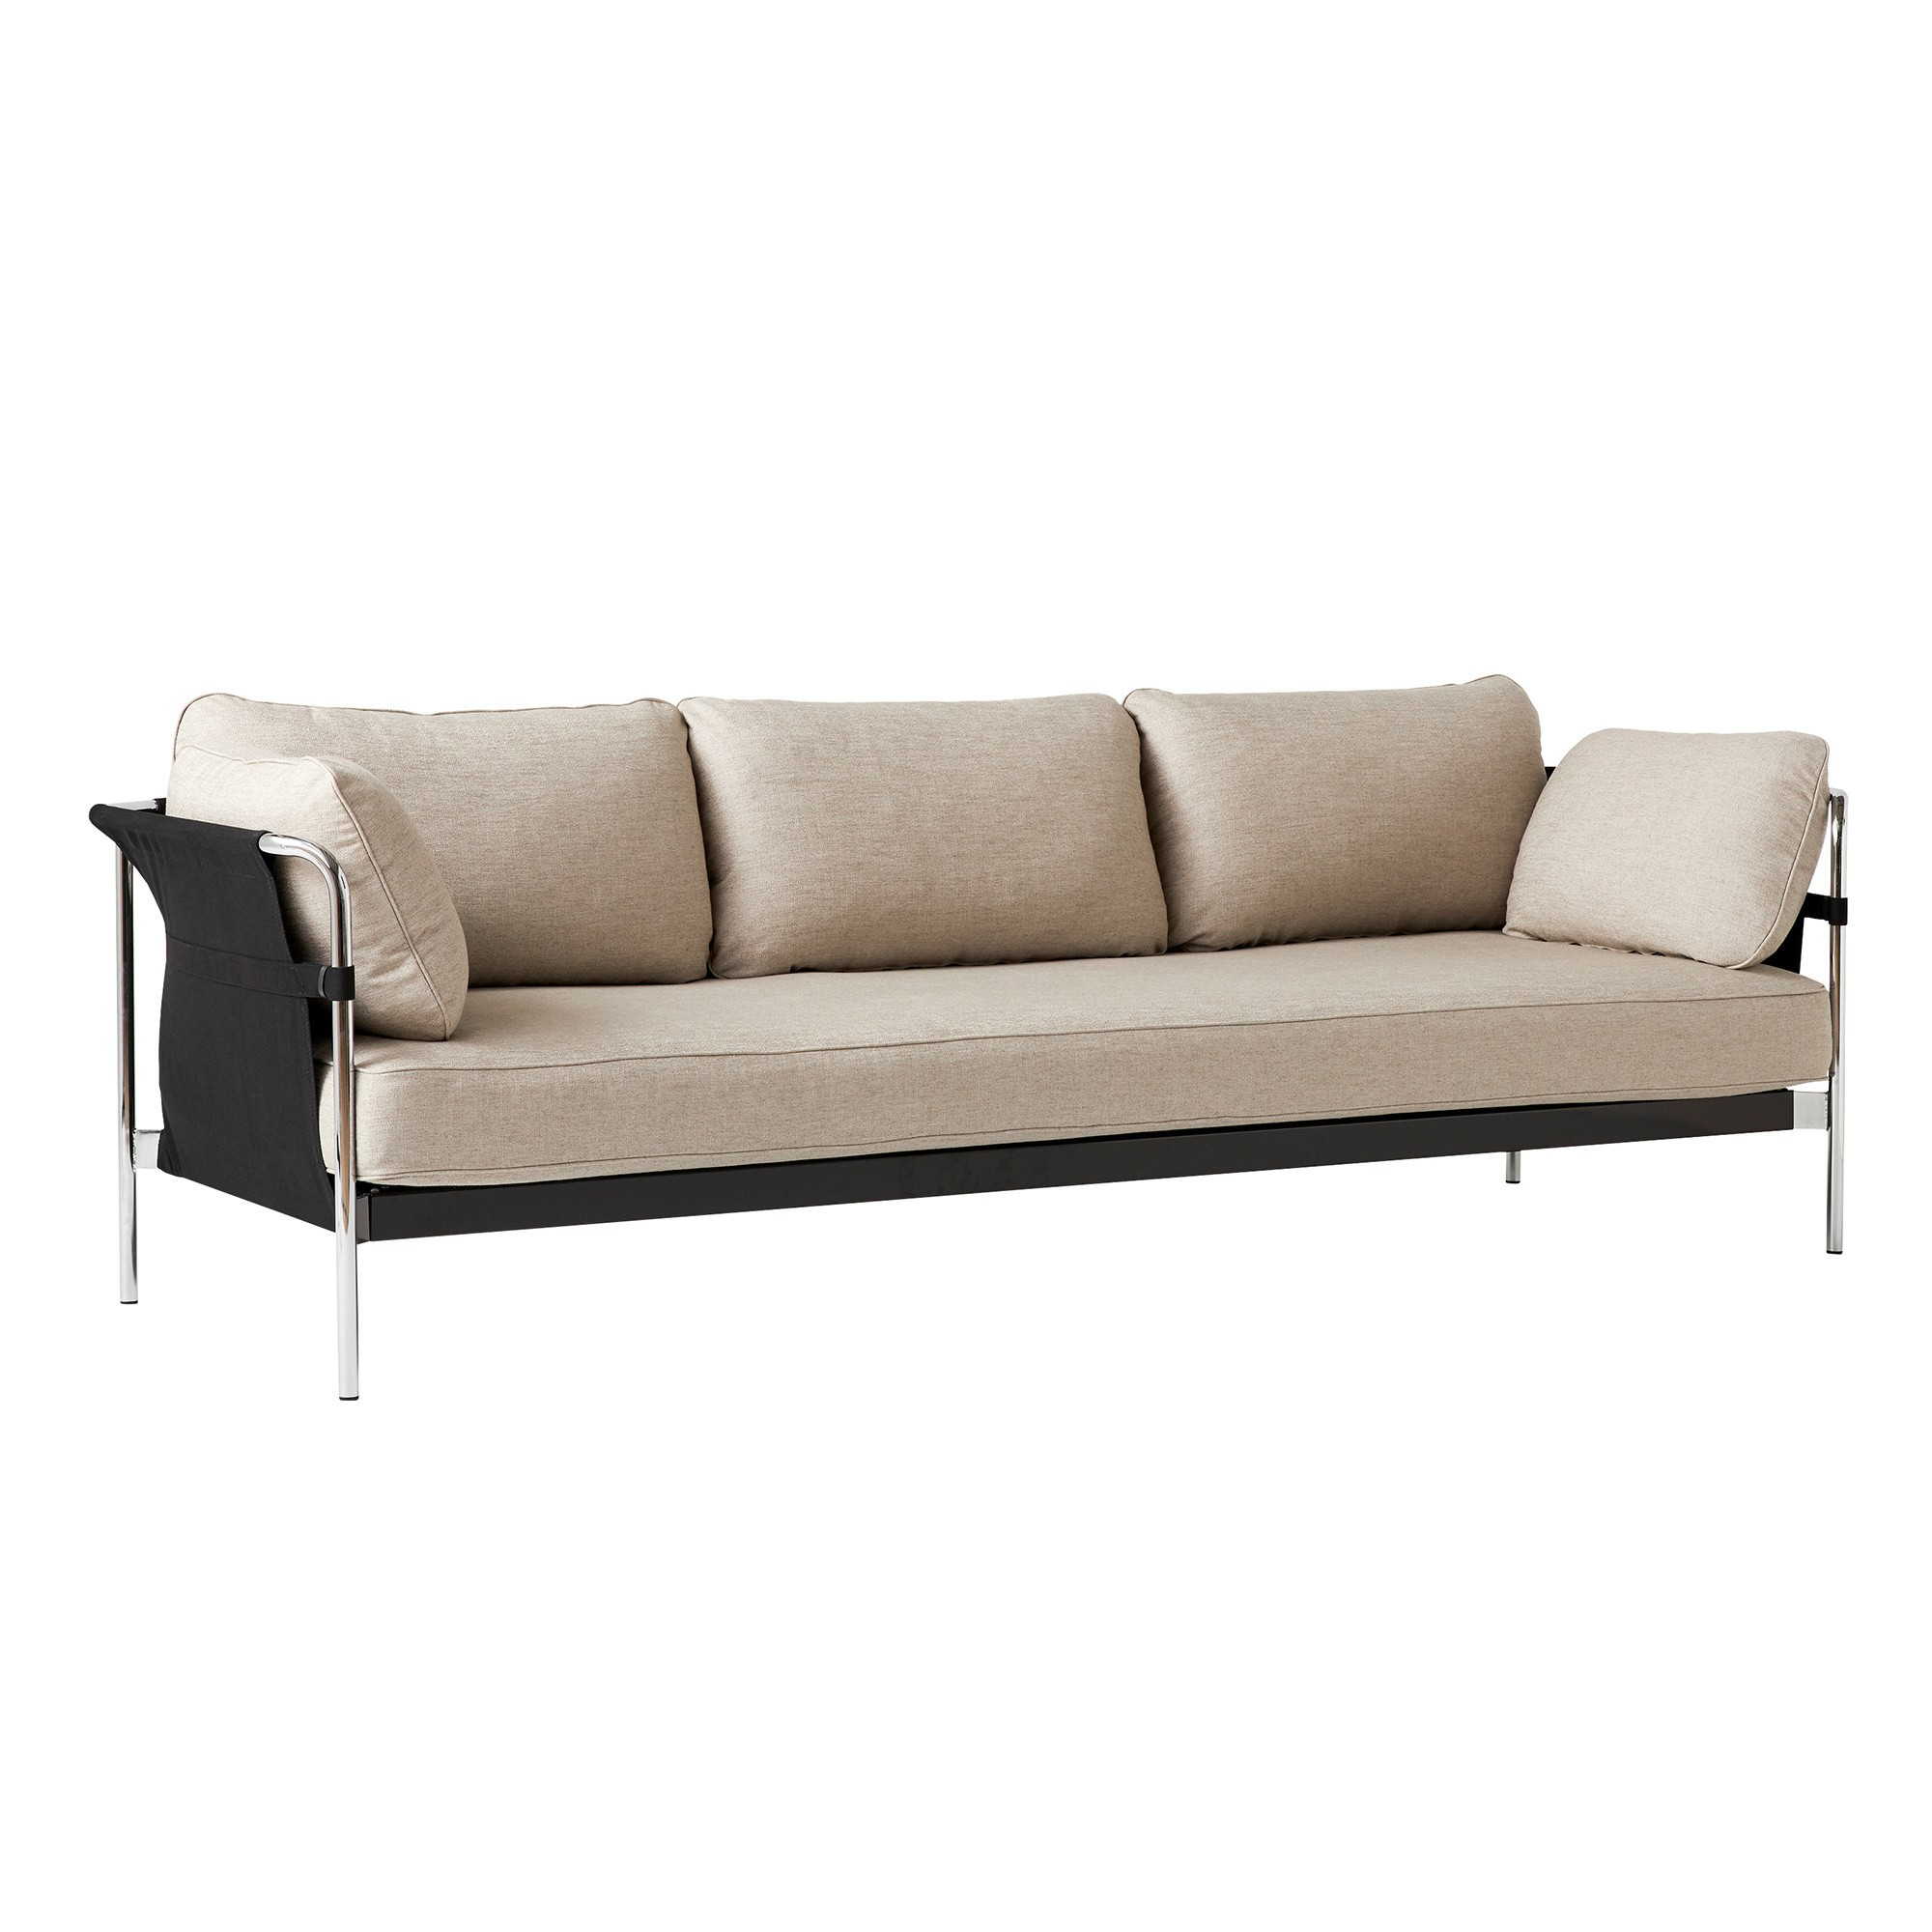 Hay Can 2 0 3 Seater Sofa Frame Steel